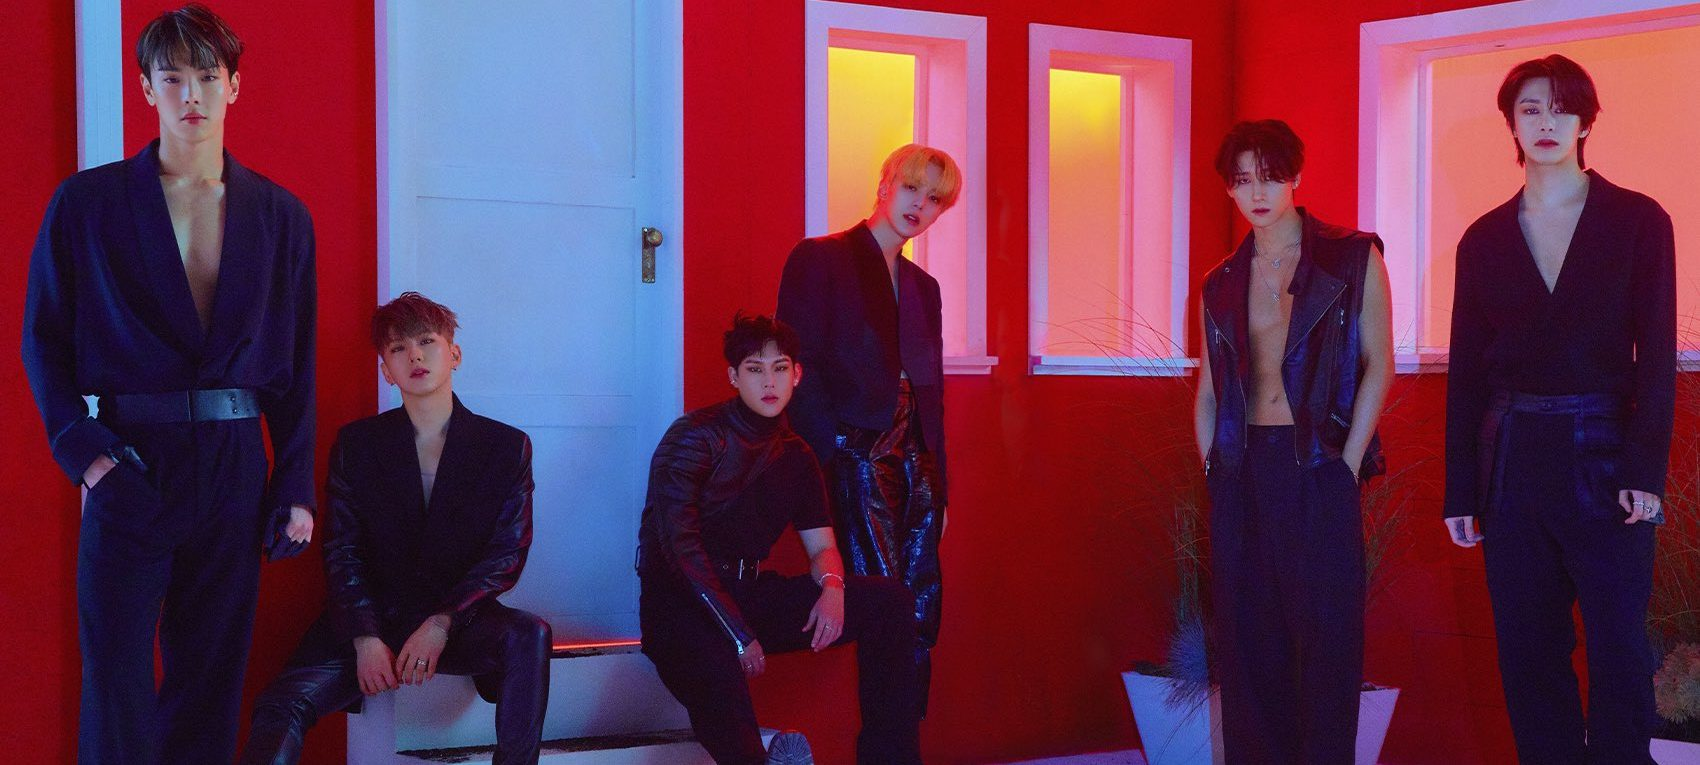 MONSTA X Personifies Flamboyance In New Concept Photos